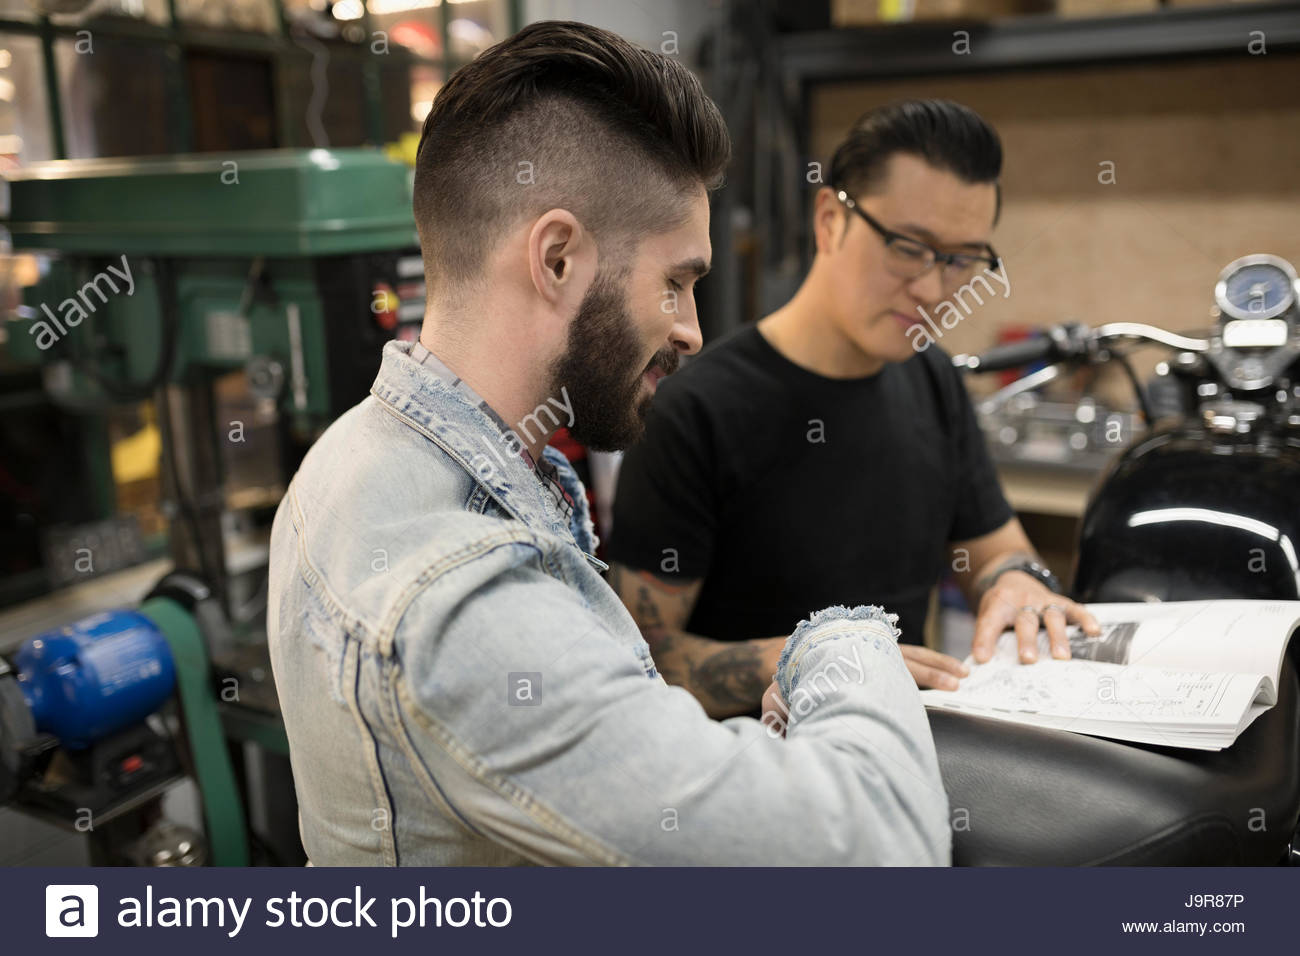 Motorcycle mechanics looking at part catalog in auto repair shop - Stock Image